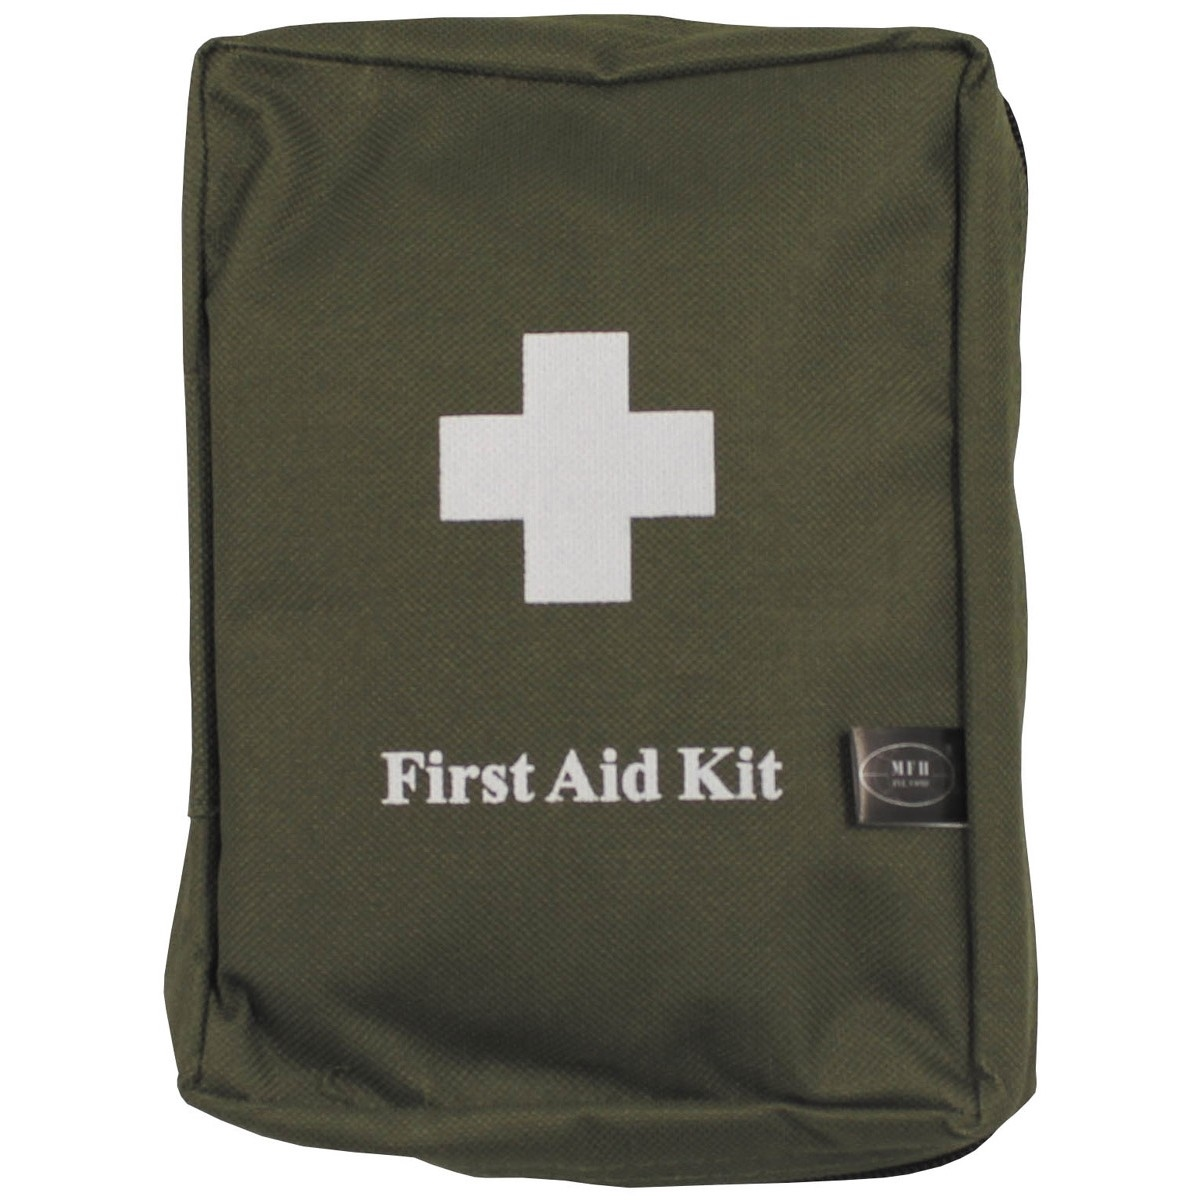 First aid kit EHBO reisset groot